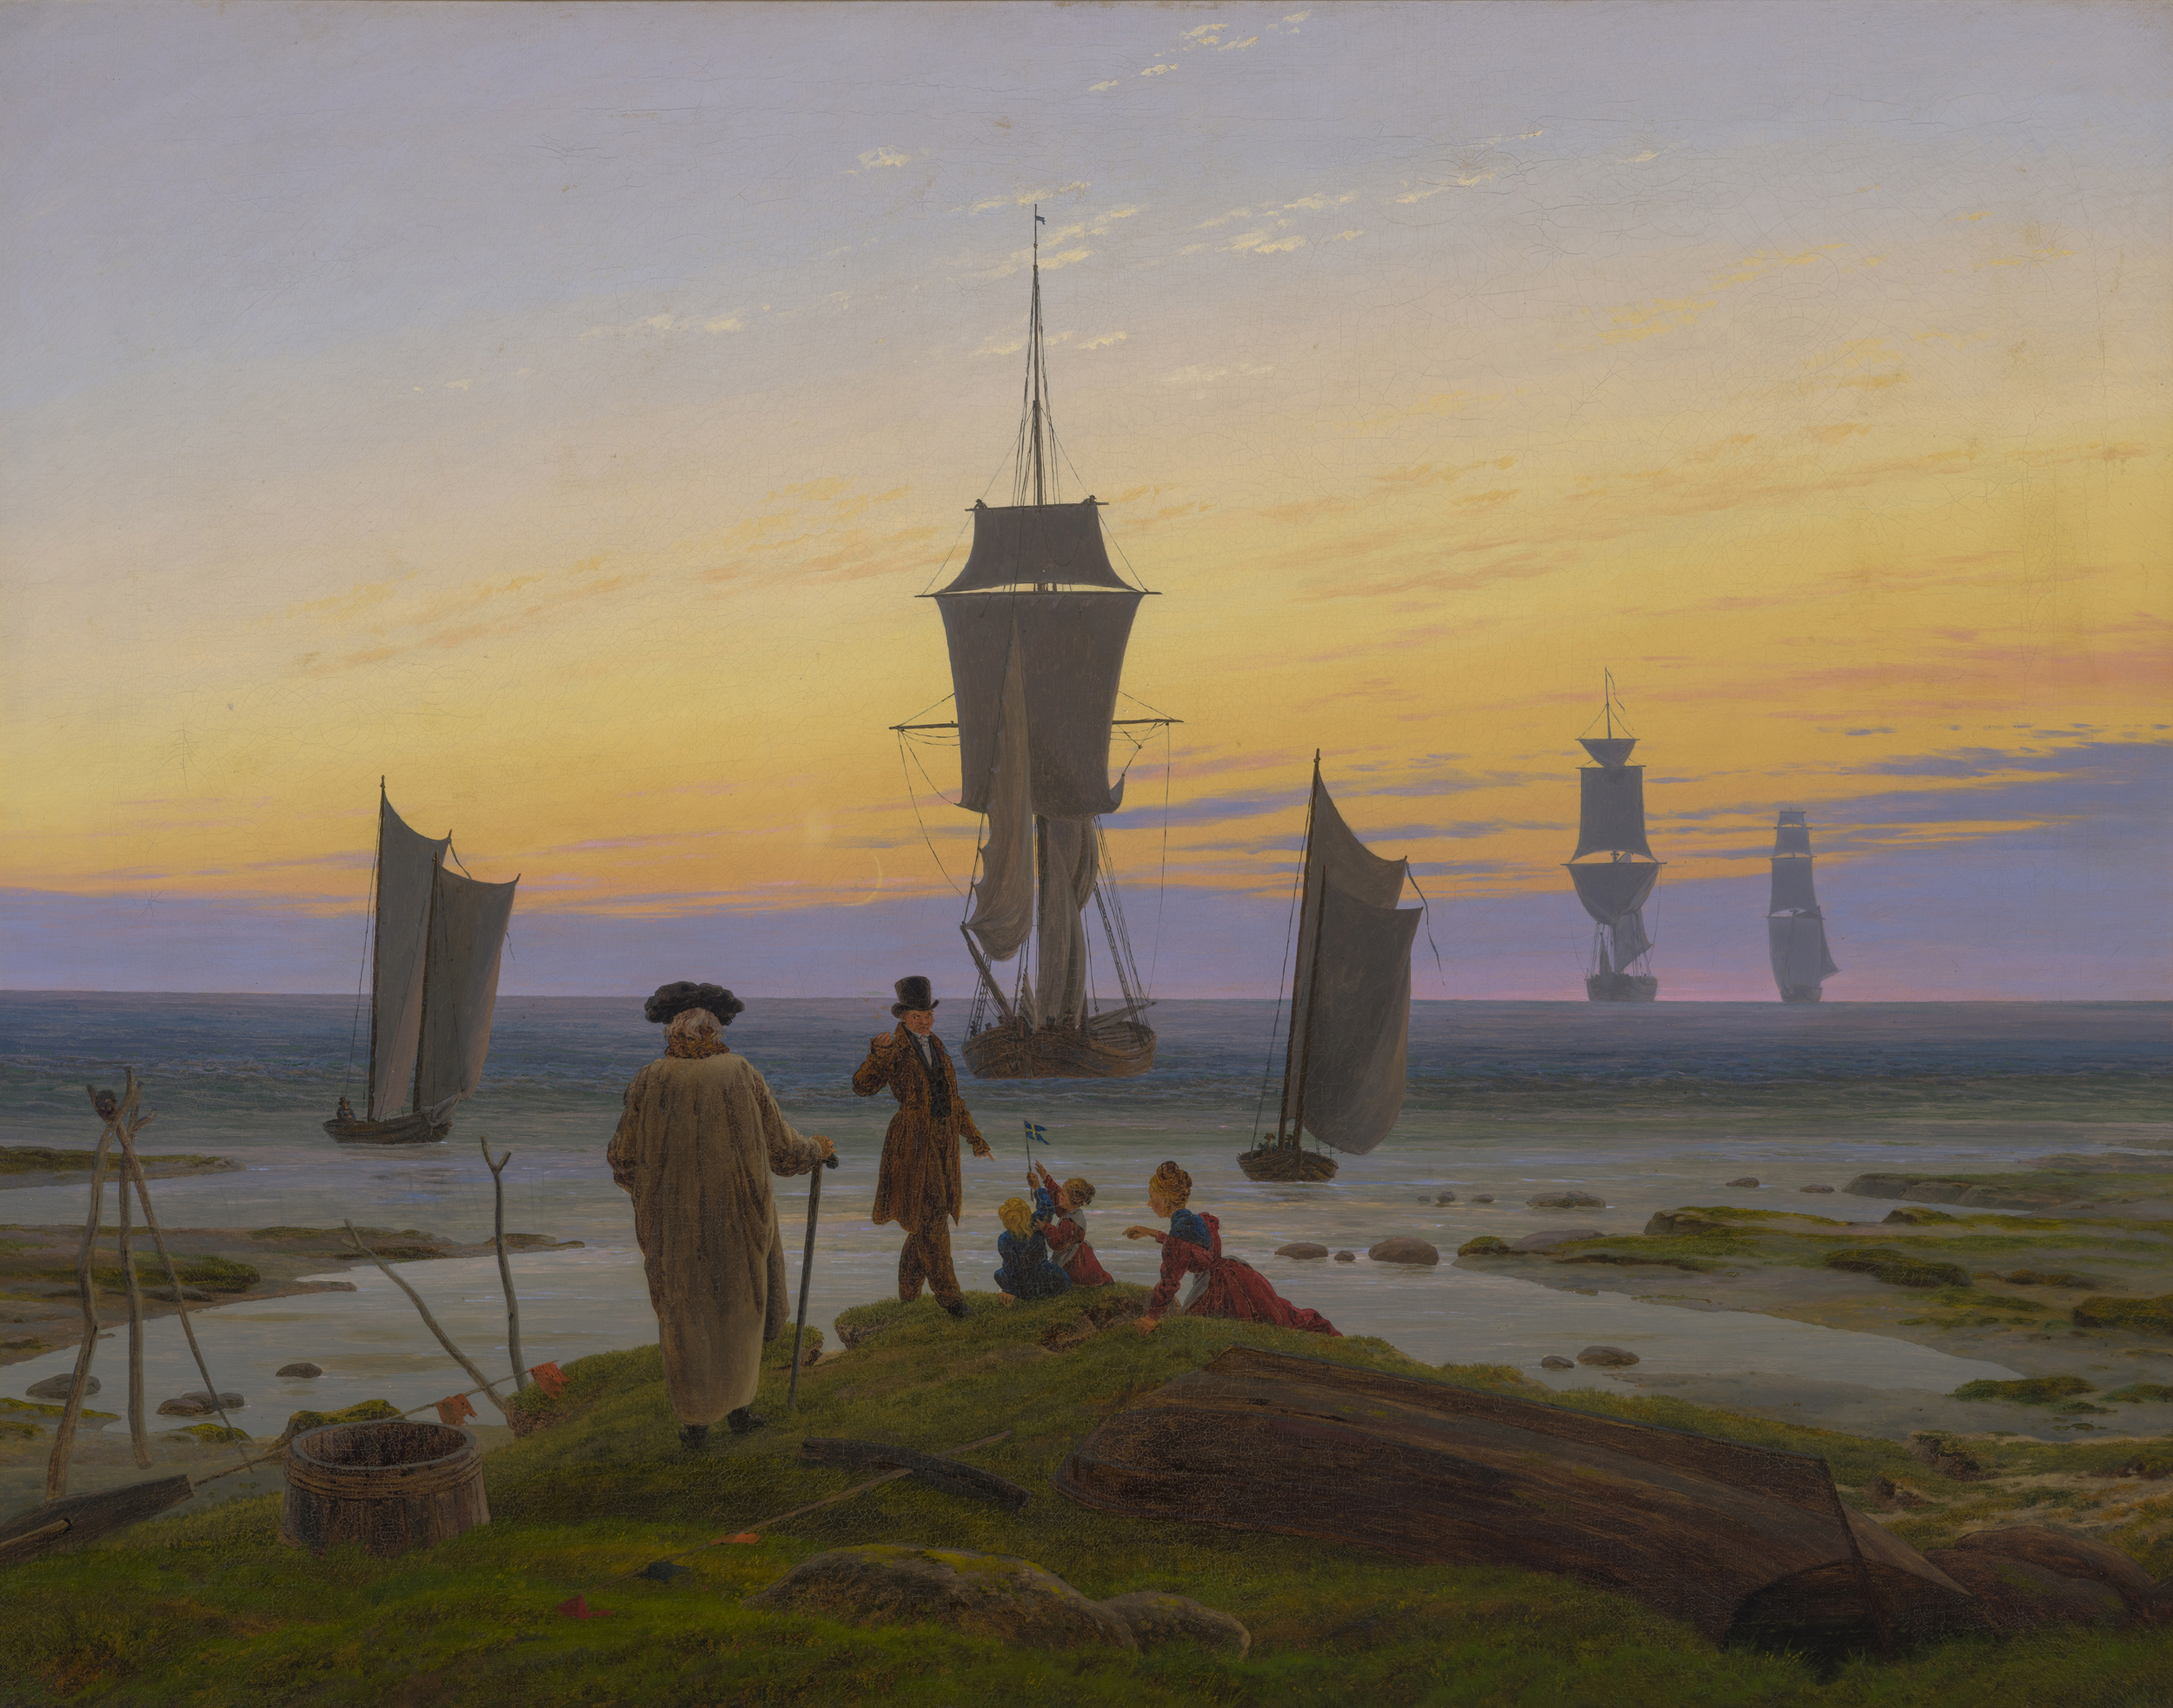 Caspar David Friedrich and the Düsseldorf Romanticists